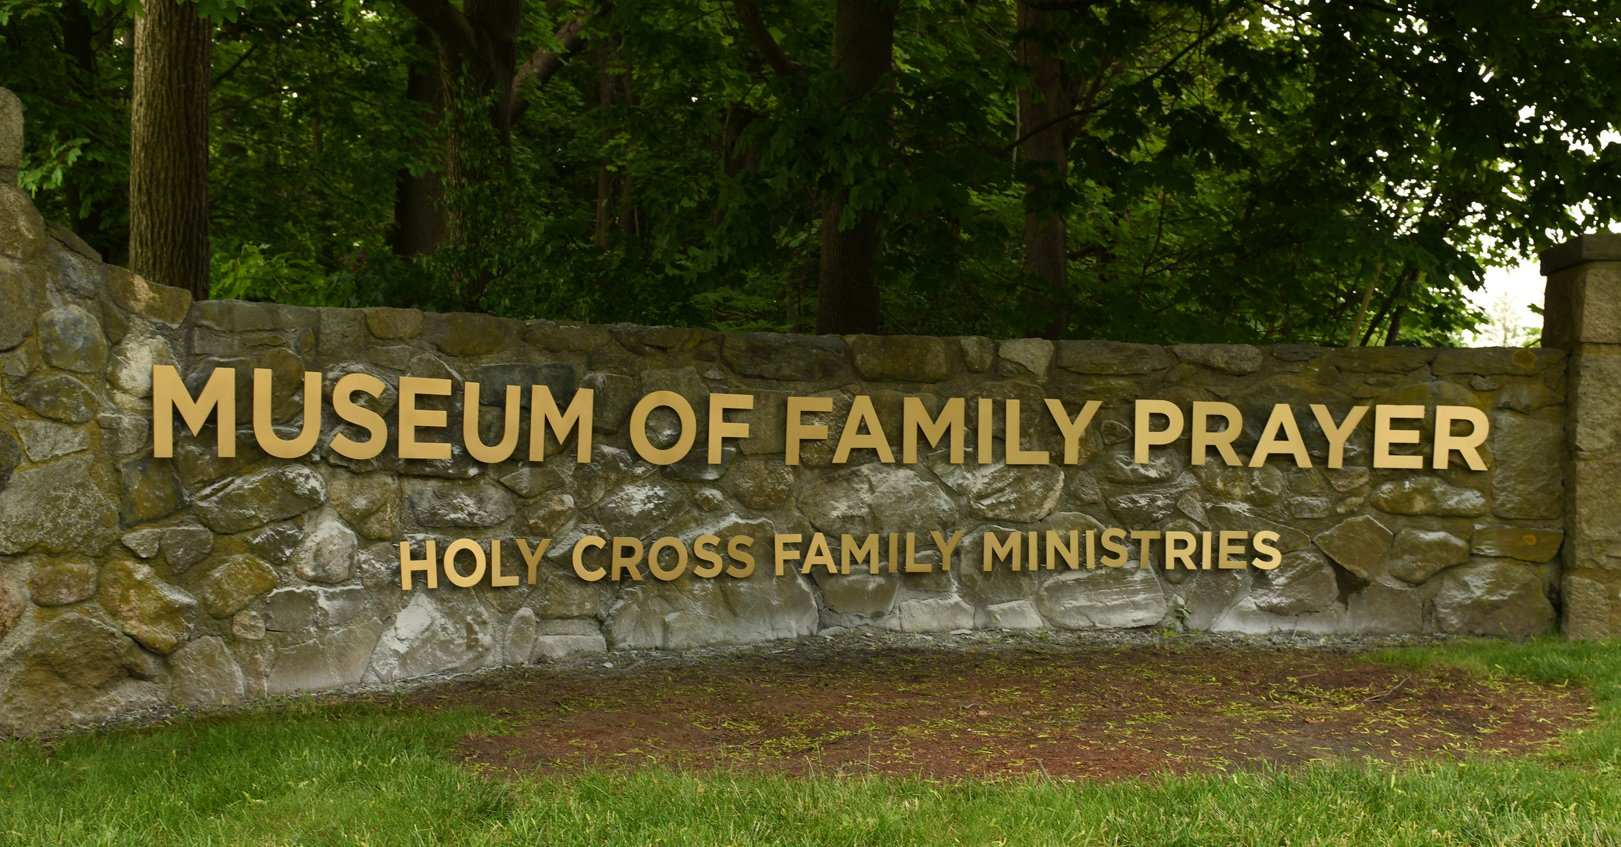 The Museum of Family Prayer: A Family-Friendly Museum